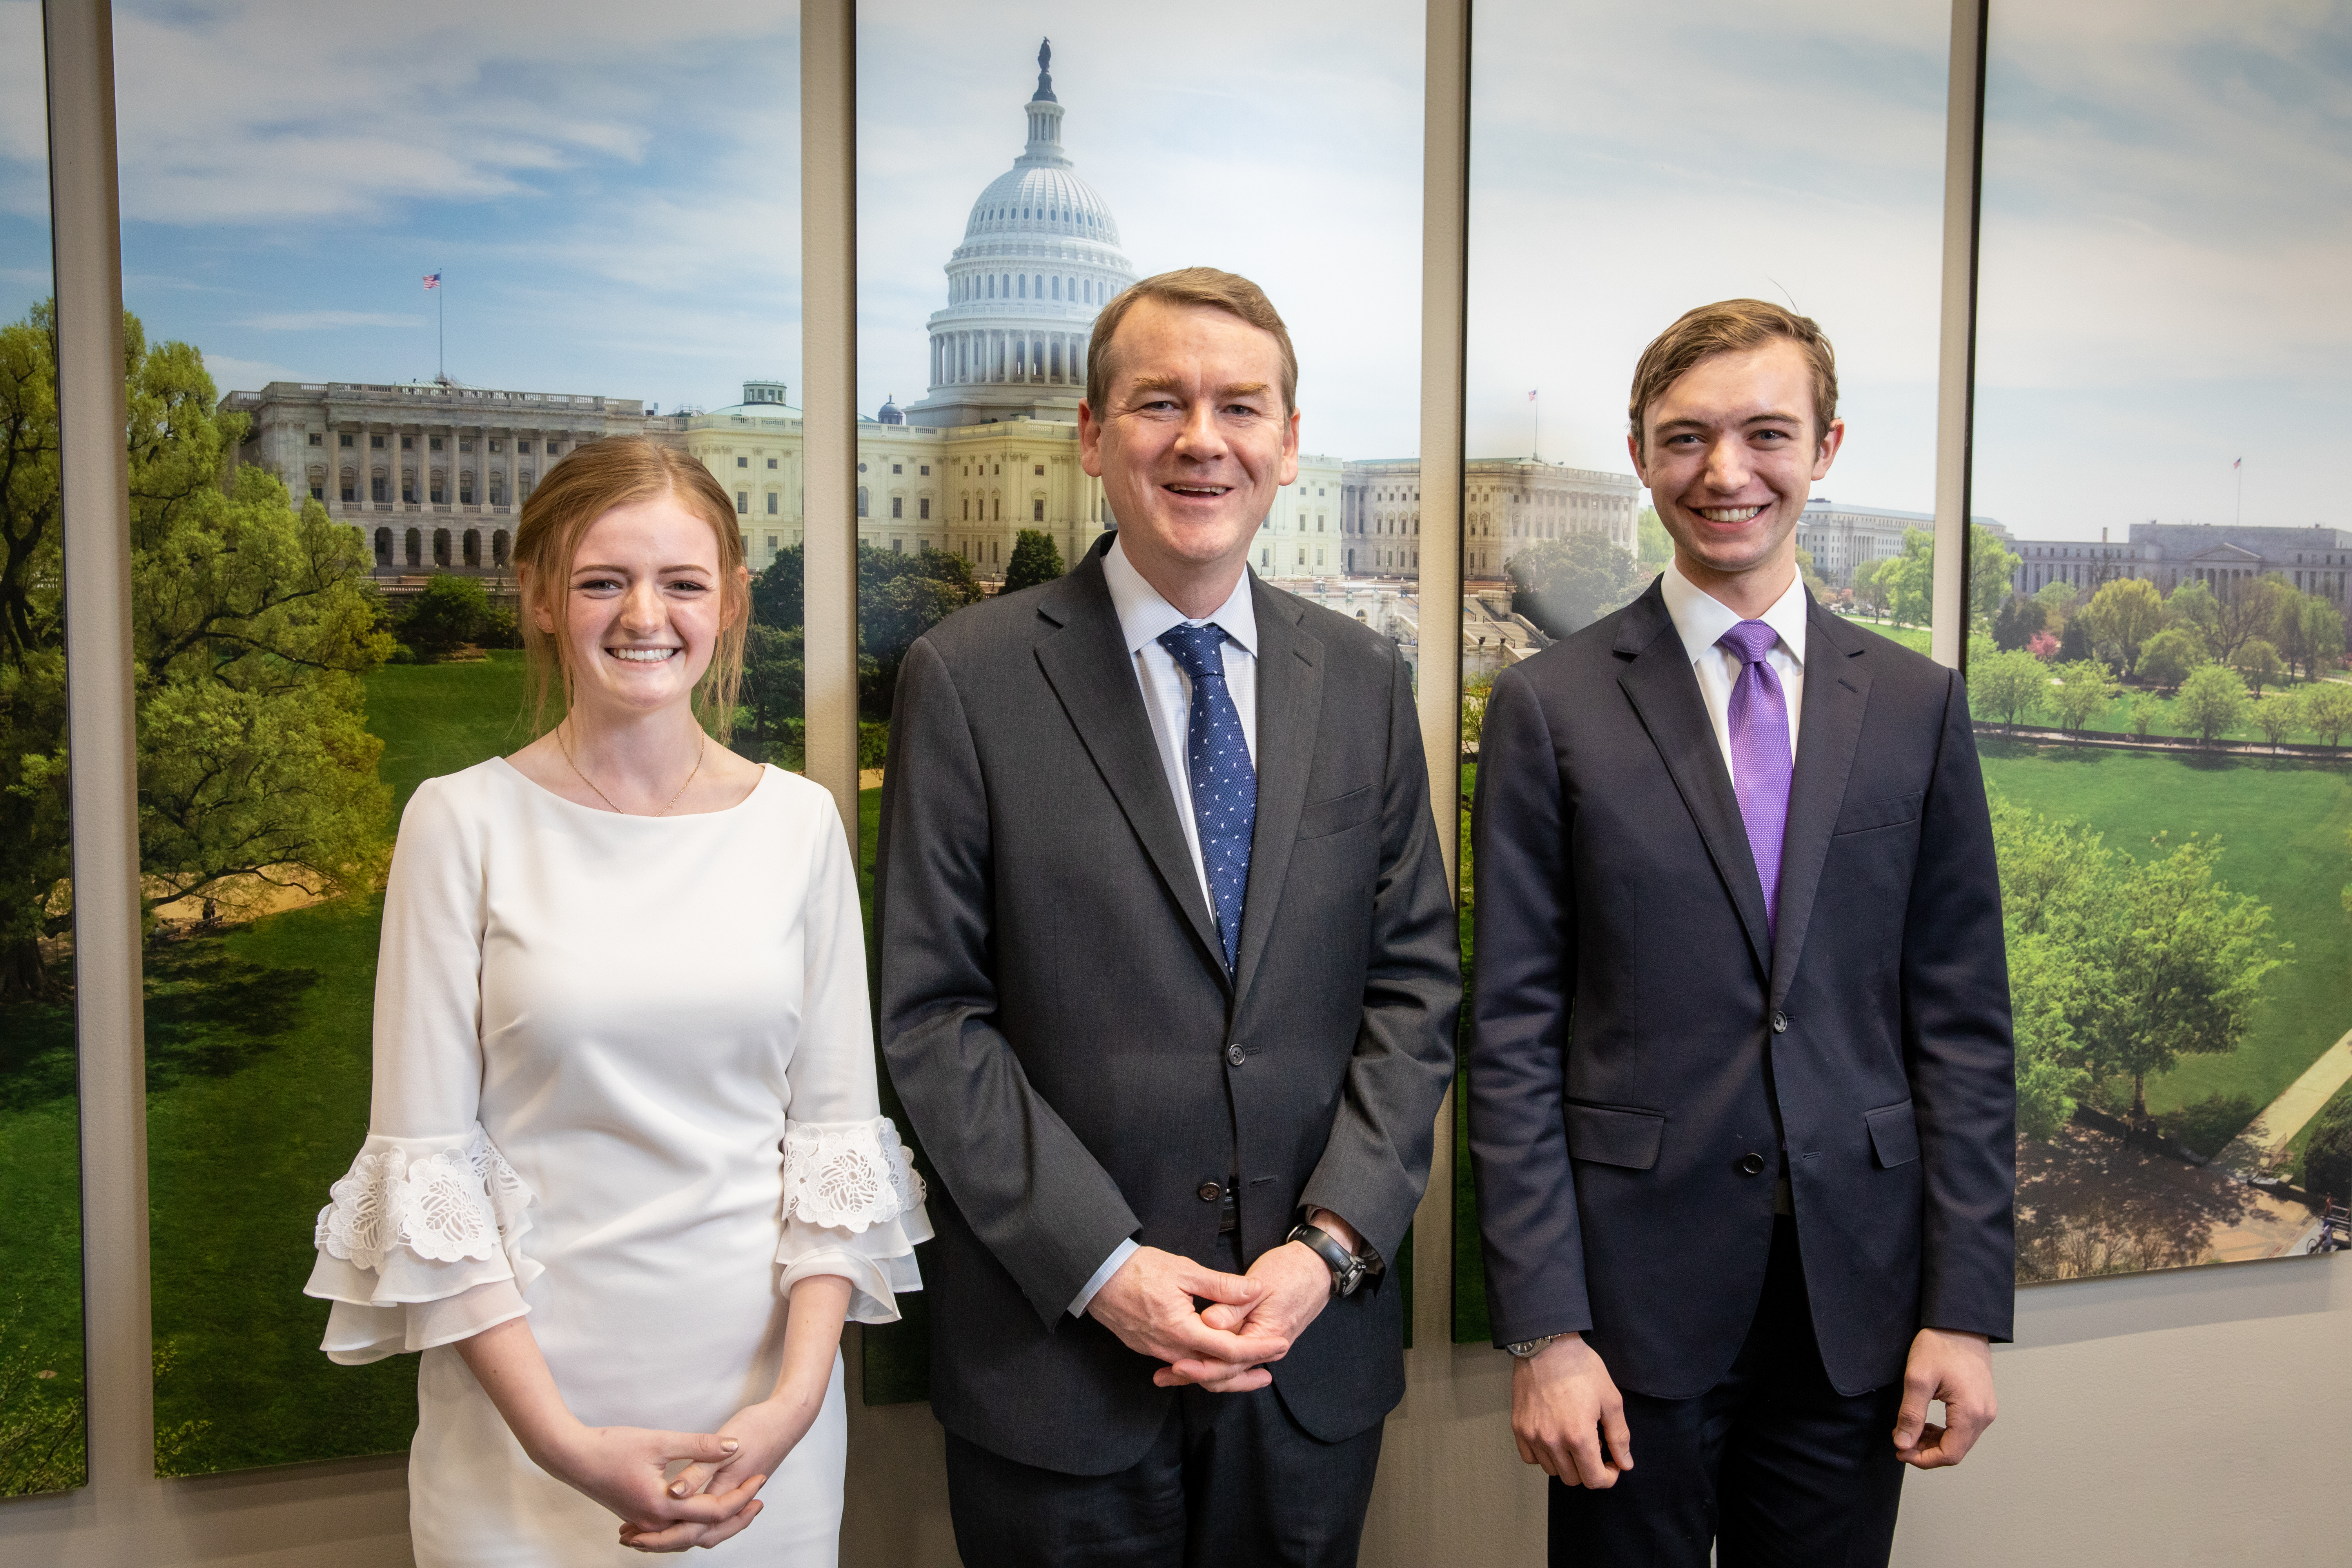 Senator Michael F. Bennet with Senate Youth Delegates Anne Marie Ackerman and Ethan Wearner